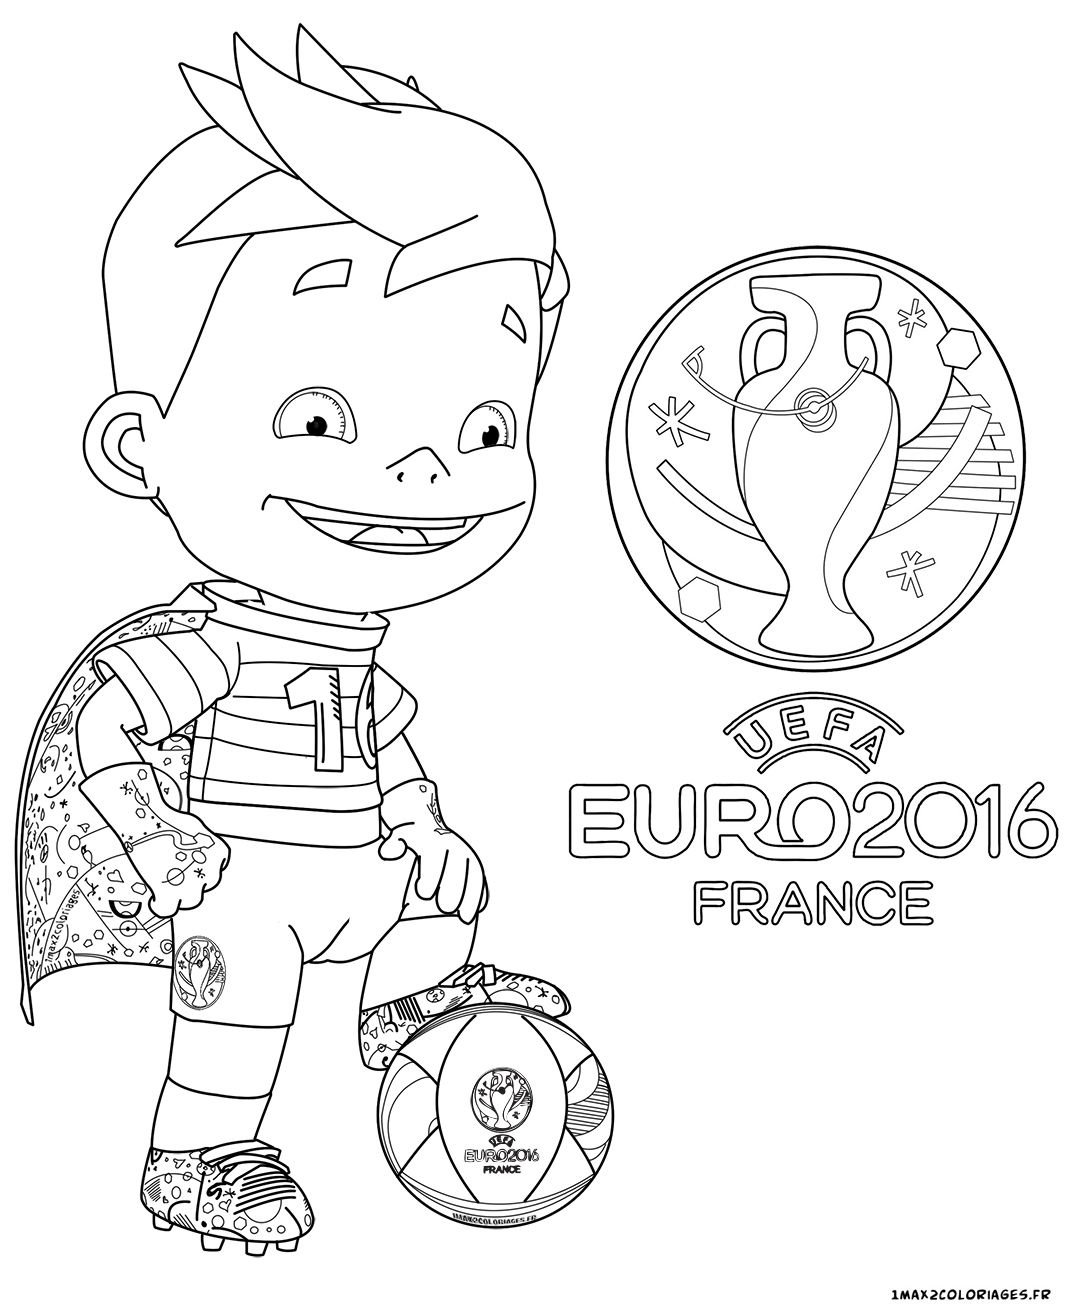 Coloriage de la mascotte officielle de l euro 2016 de football